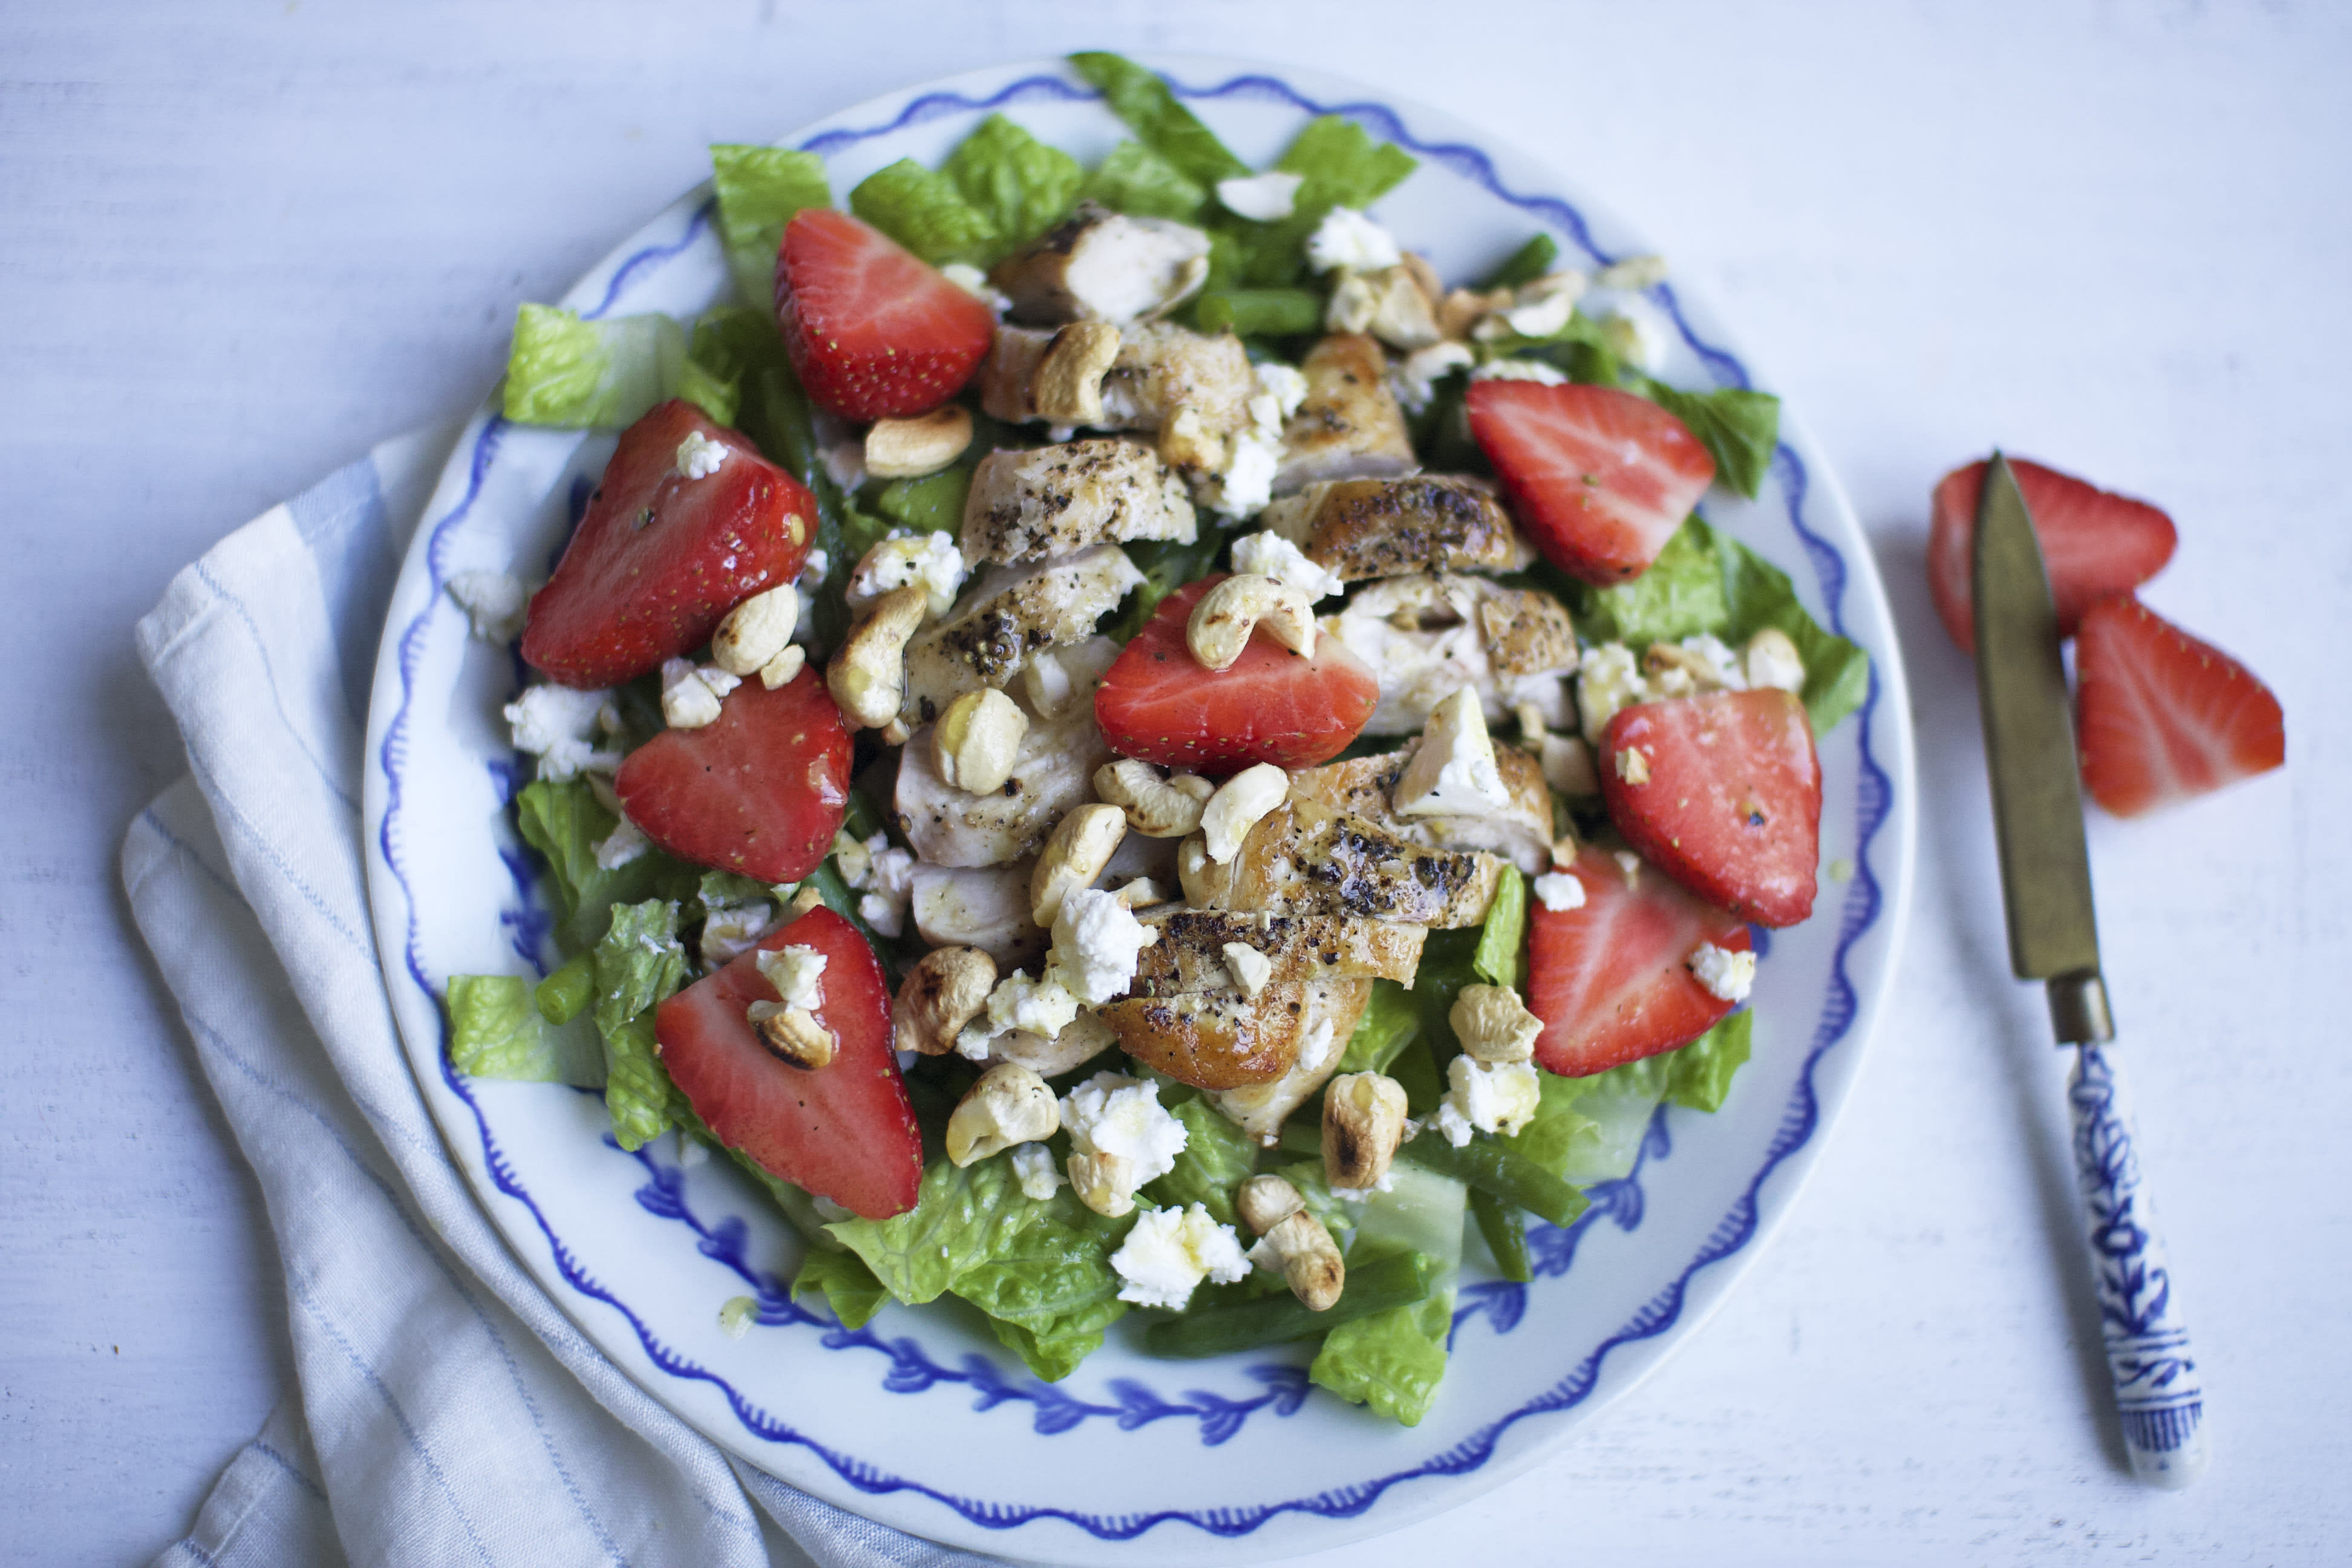 Chicken and Strawberry Salad with Green beans and Feta Cheese